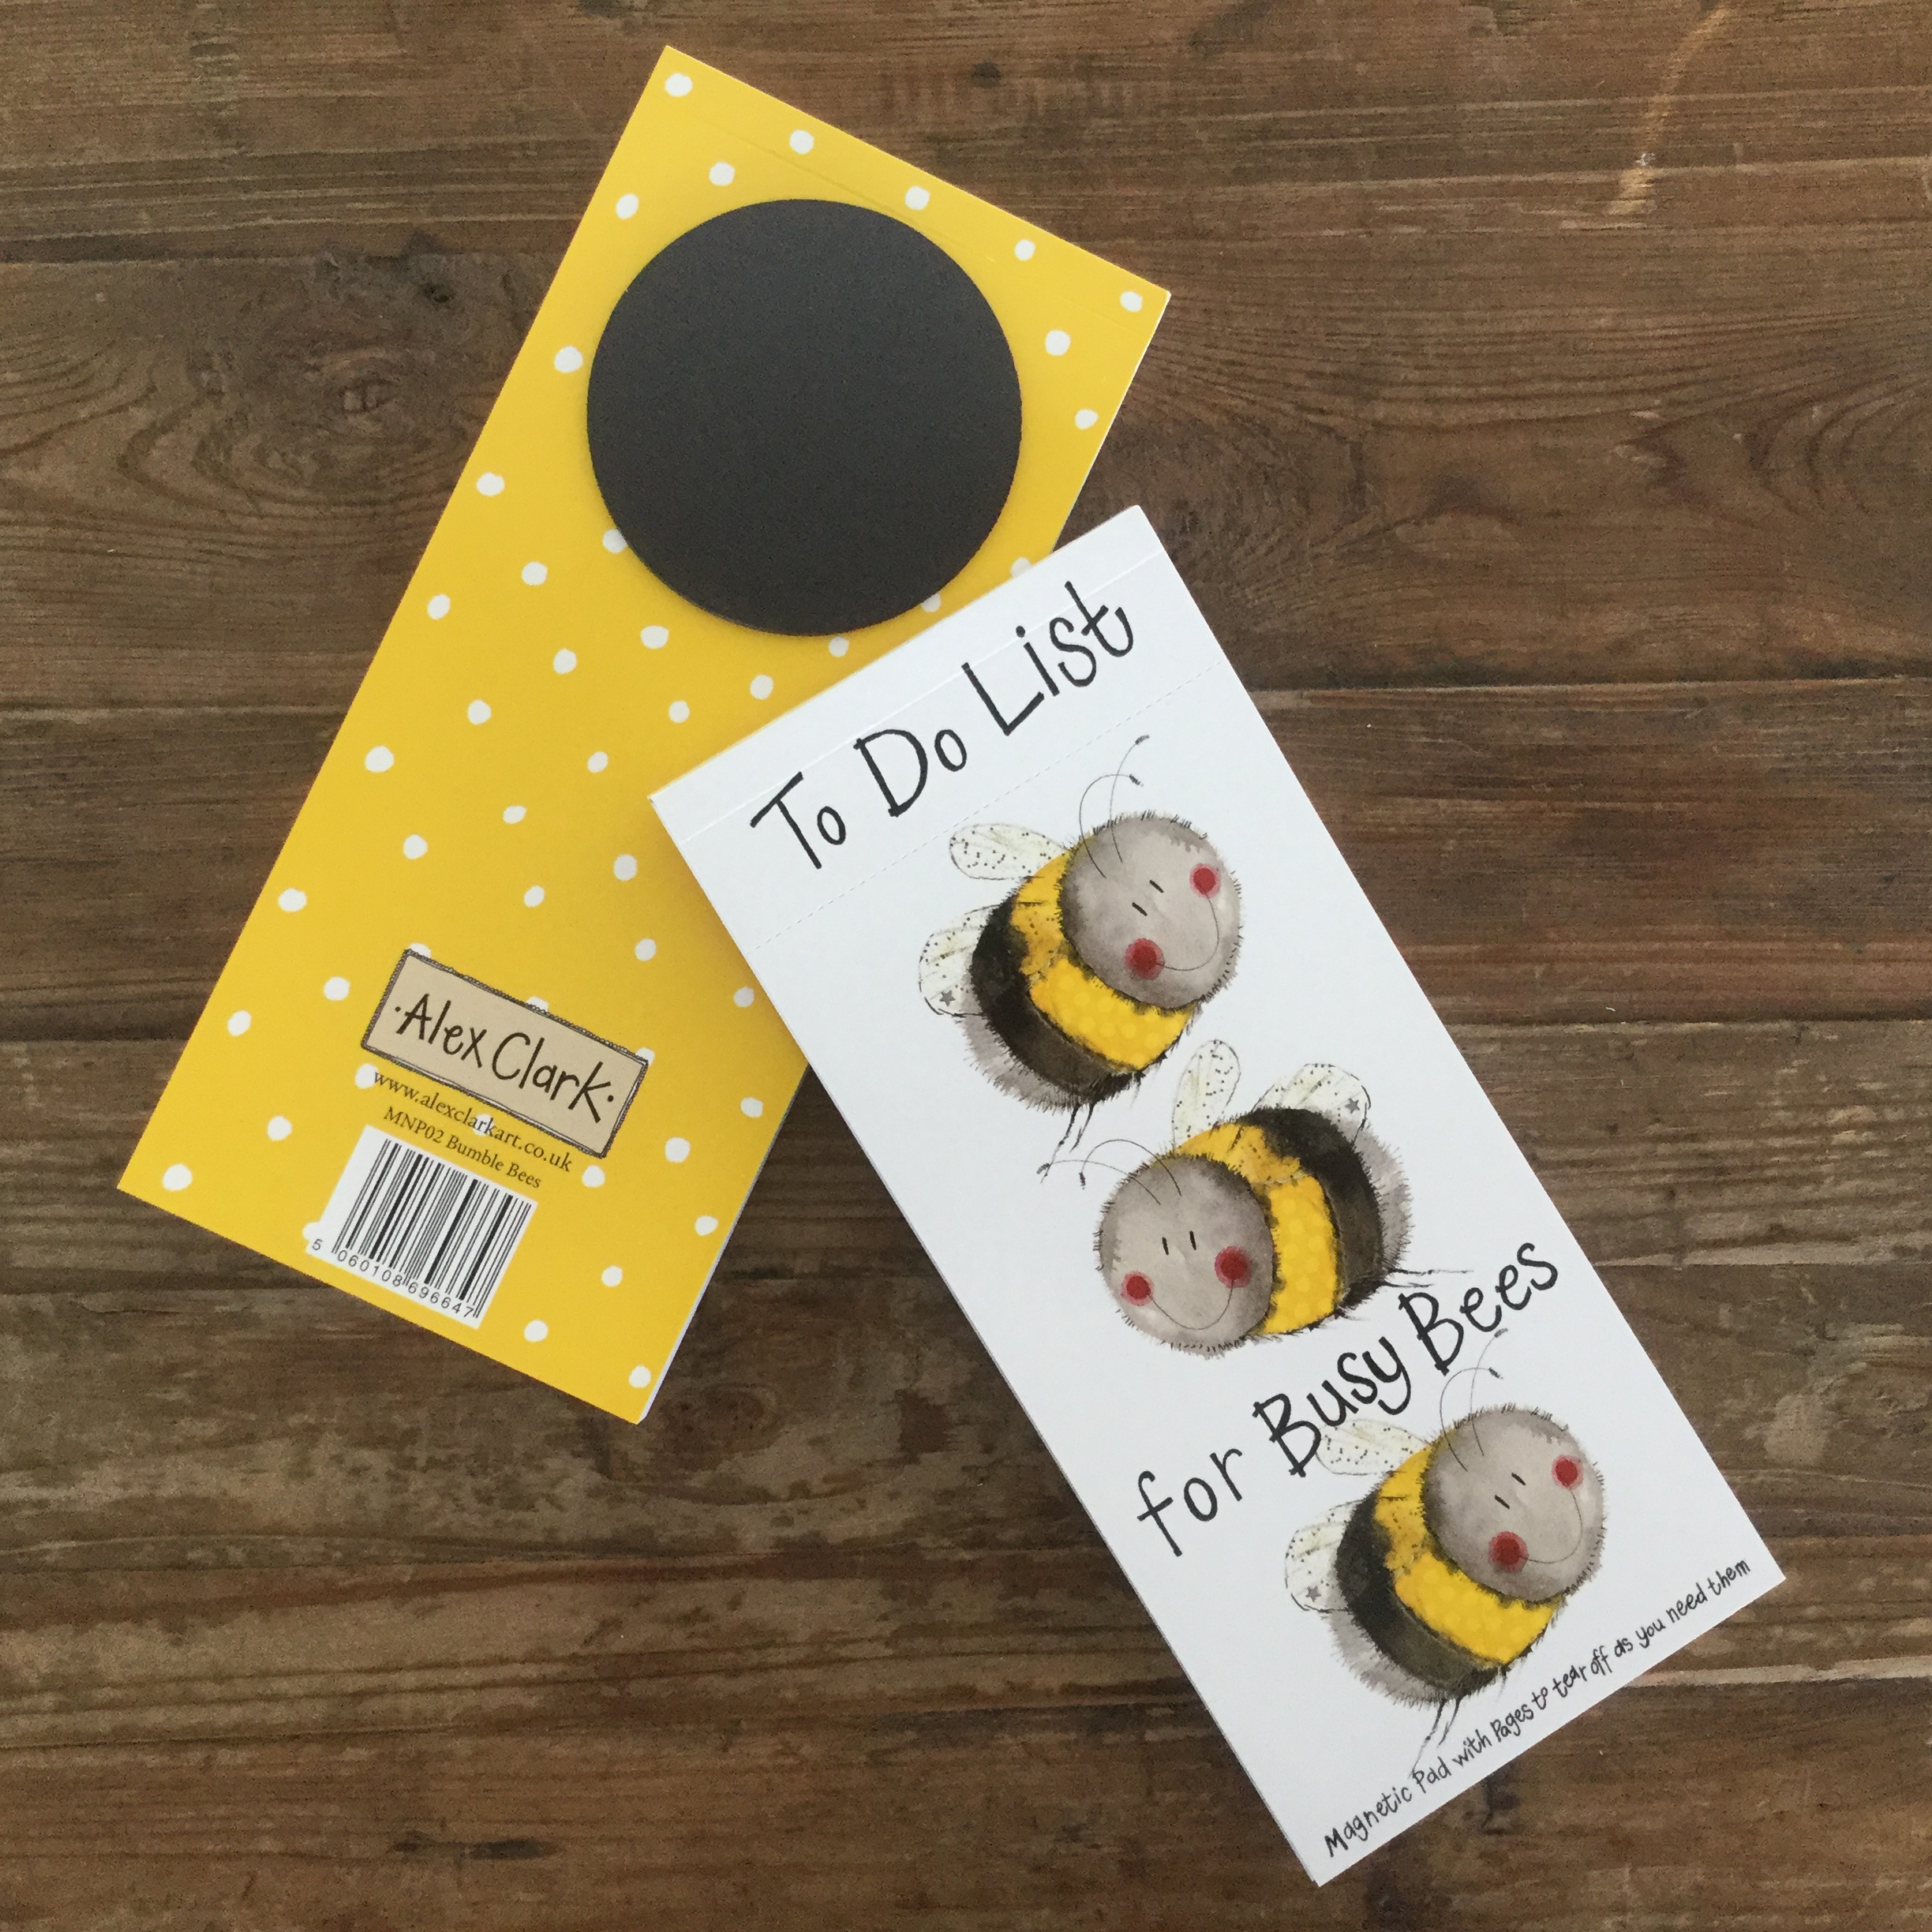 Busy Bees Alex Clark 2020 Calendar: Bumble Bees Magentic To Do Lists